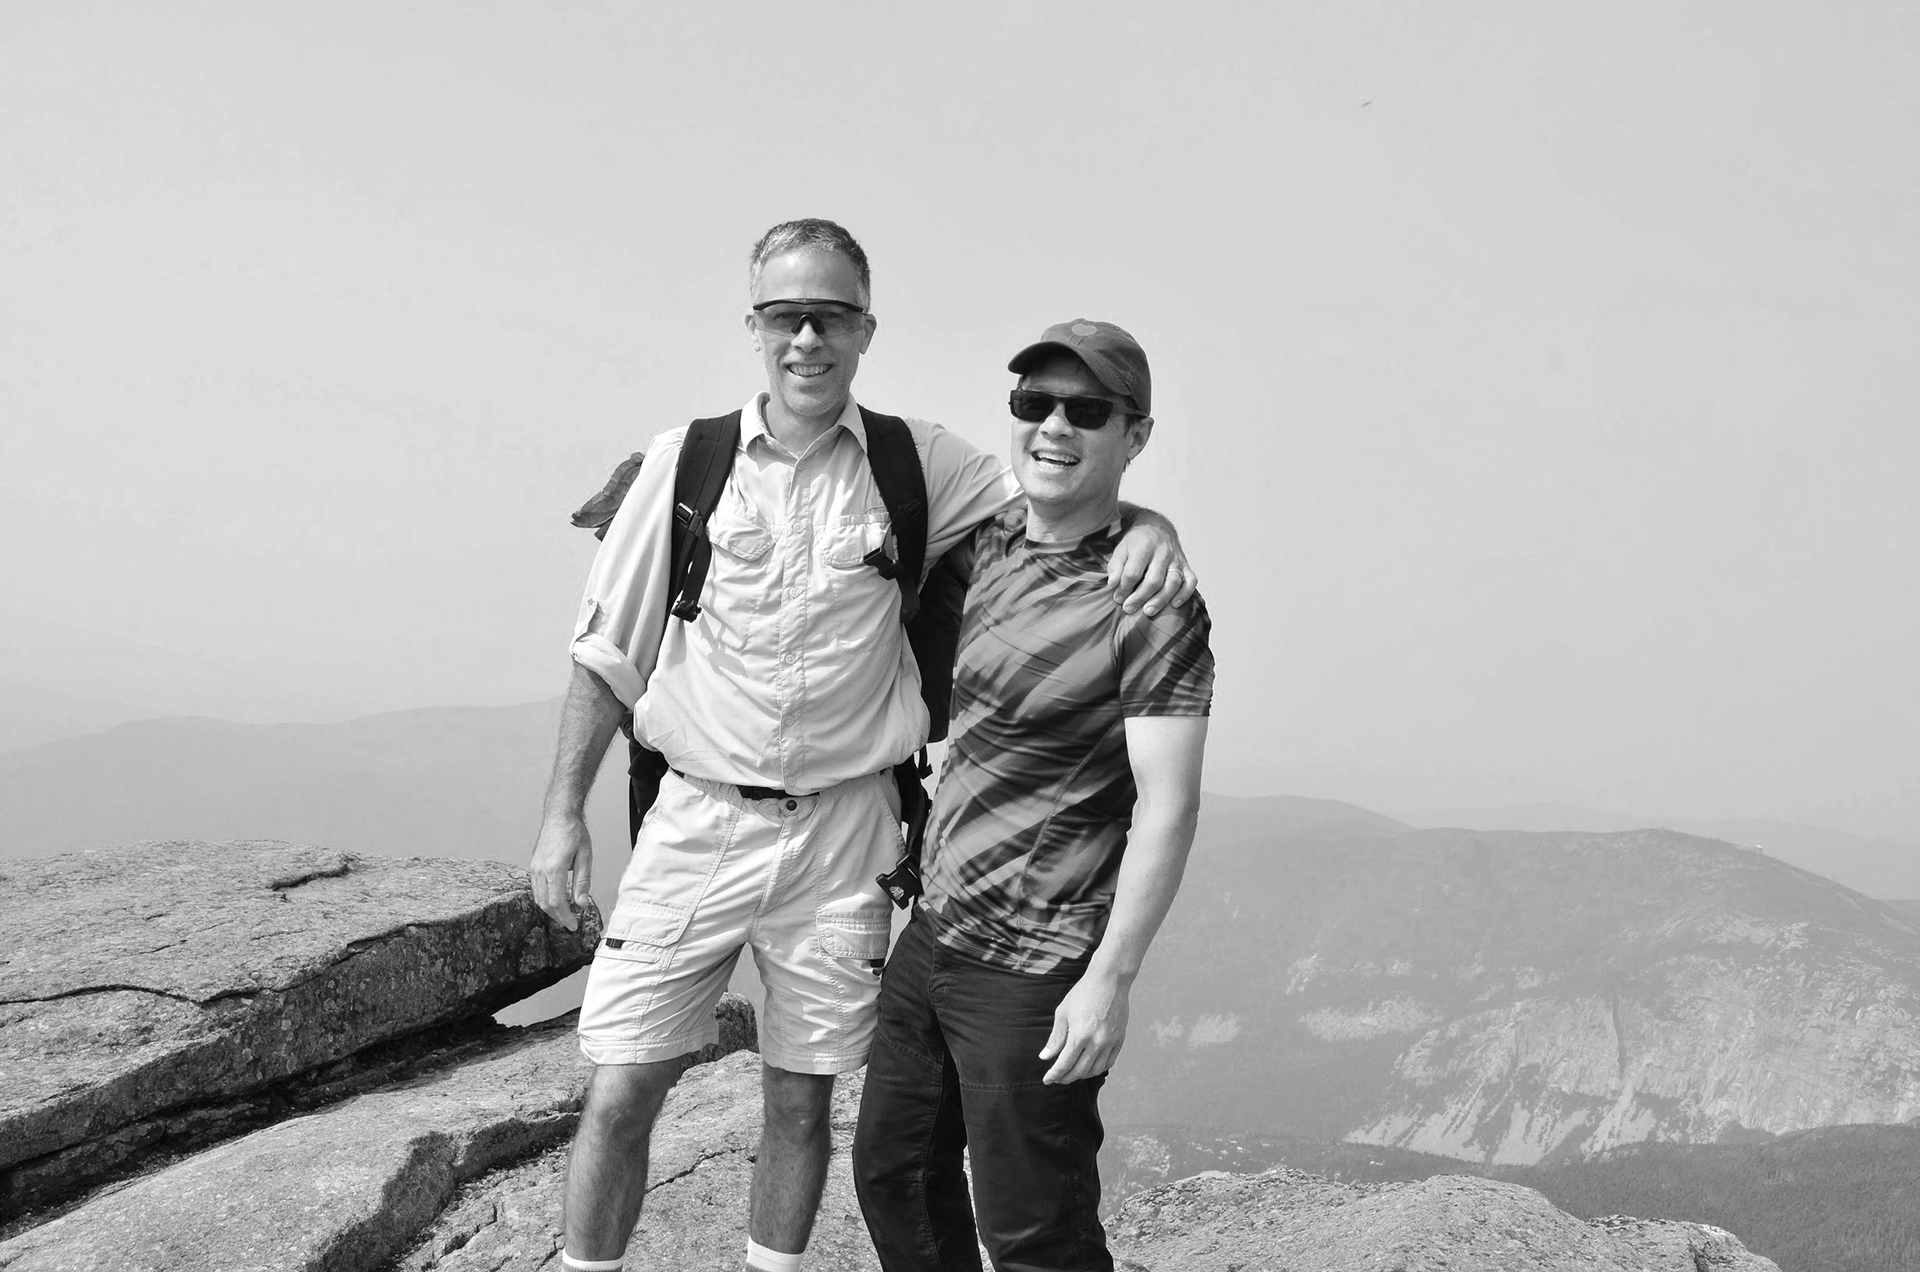 Tony and Andy on top of mountain in New Hampshire